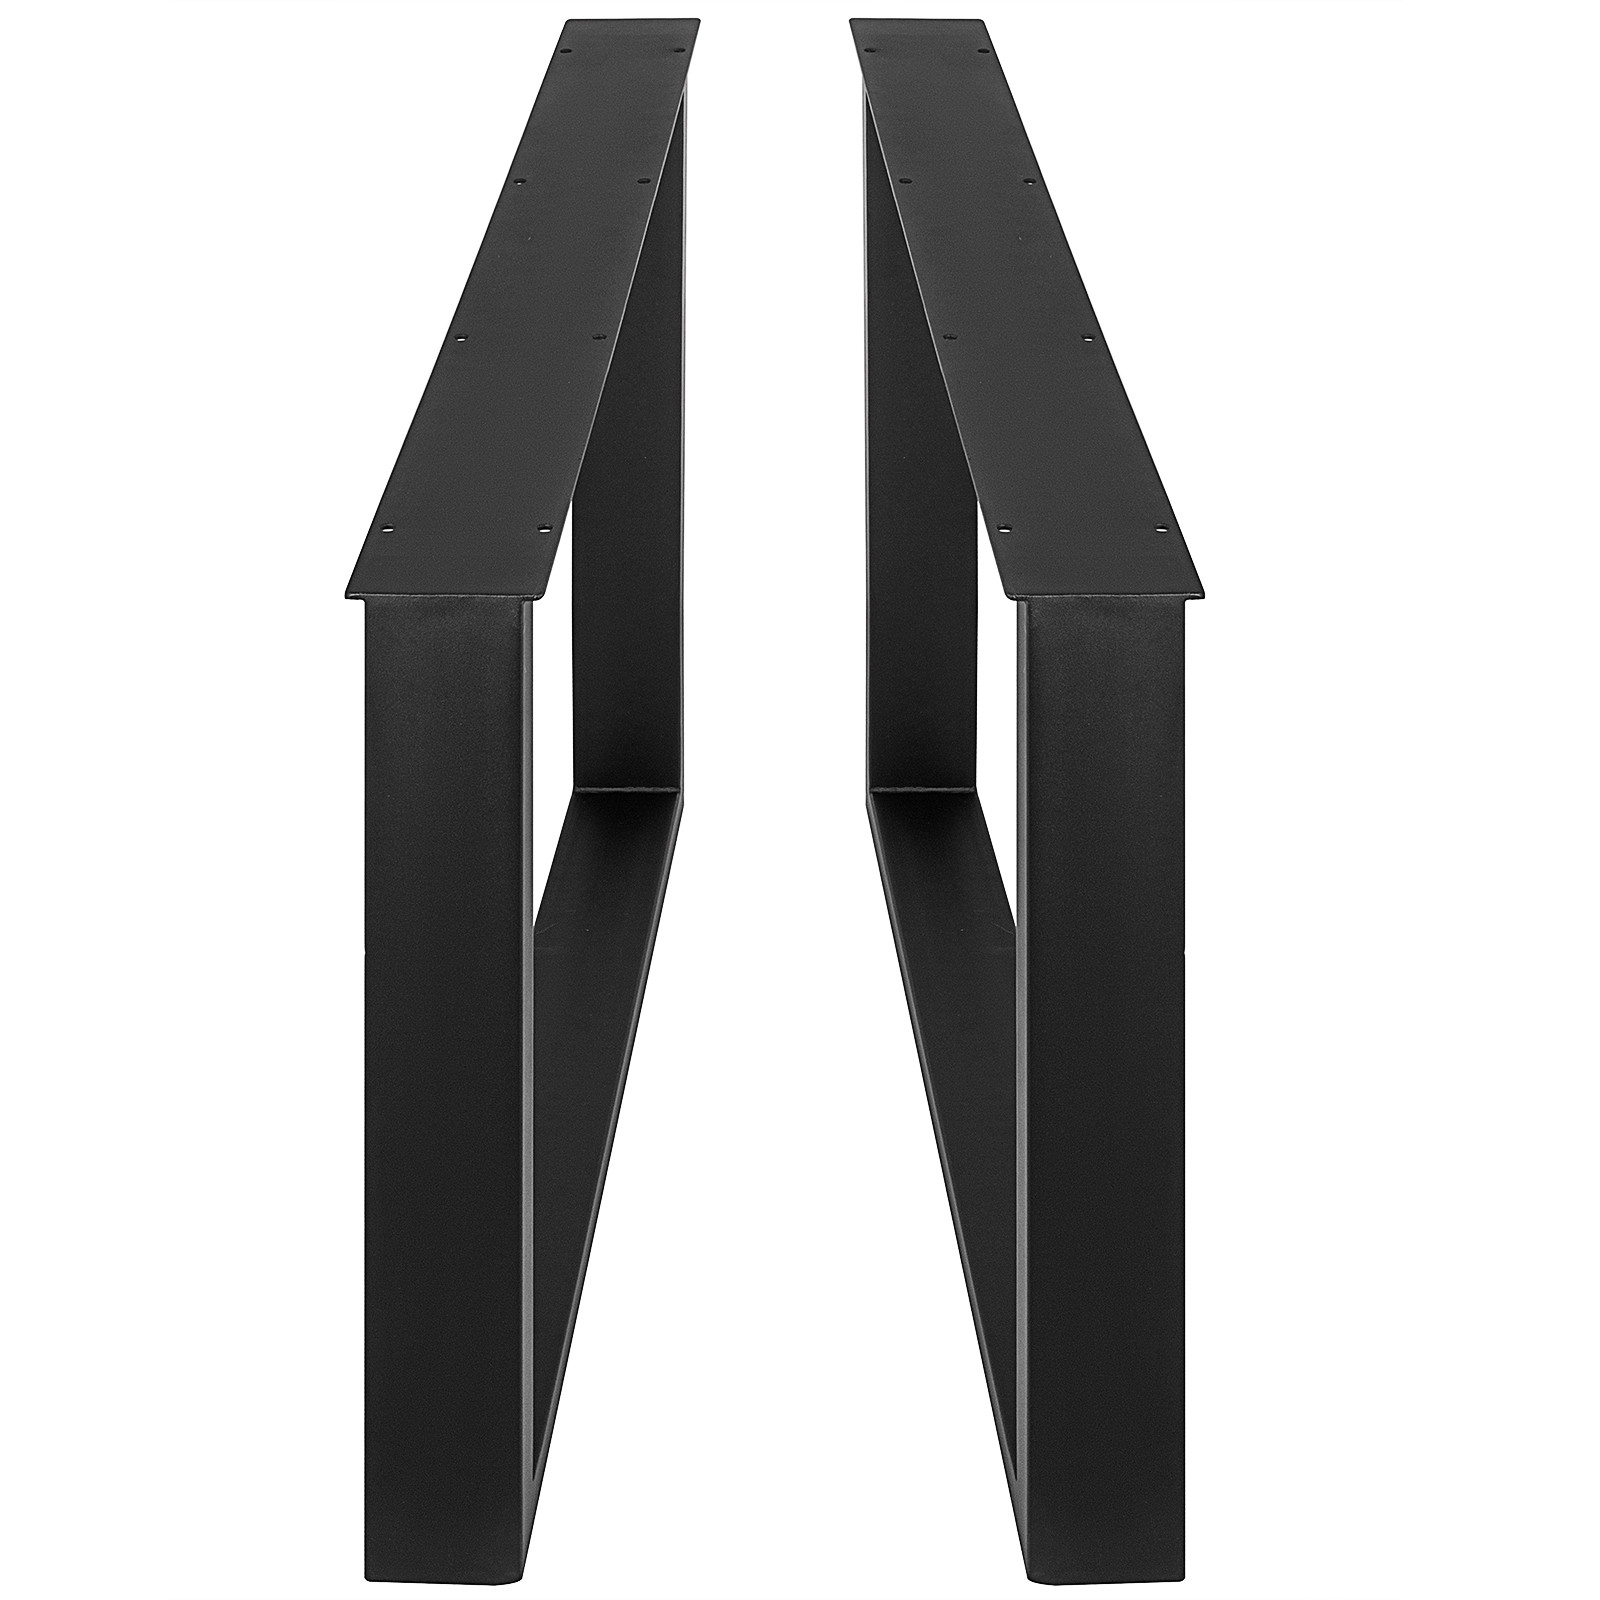 2X-Table-Legs-Black-Dining-Table-Leg-Heavy-Duty-Computer-Desk-Legs-Rectangle thumbnail 17